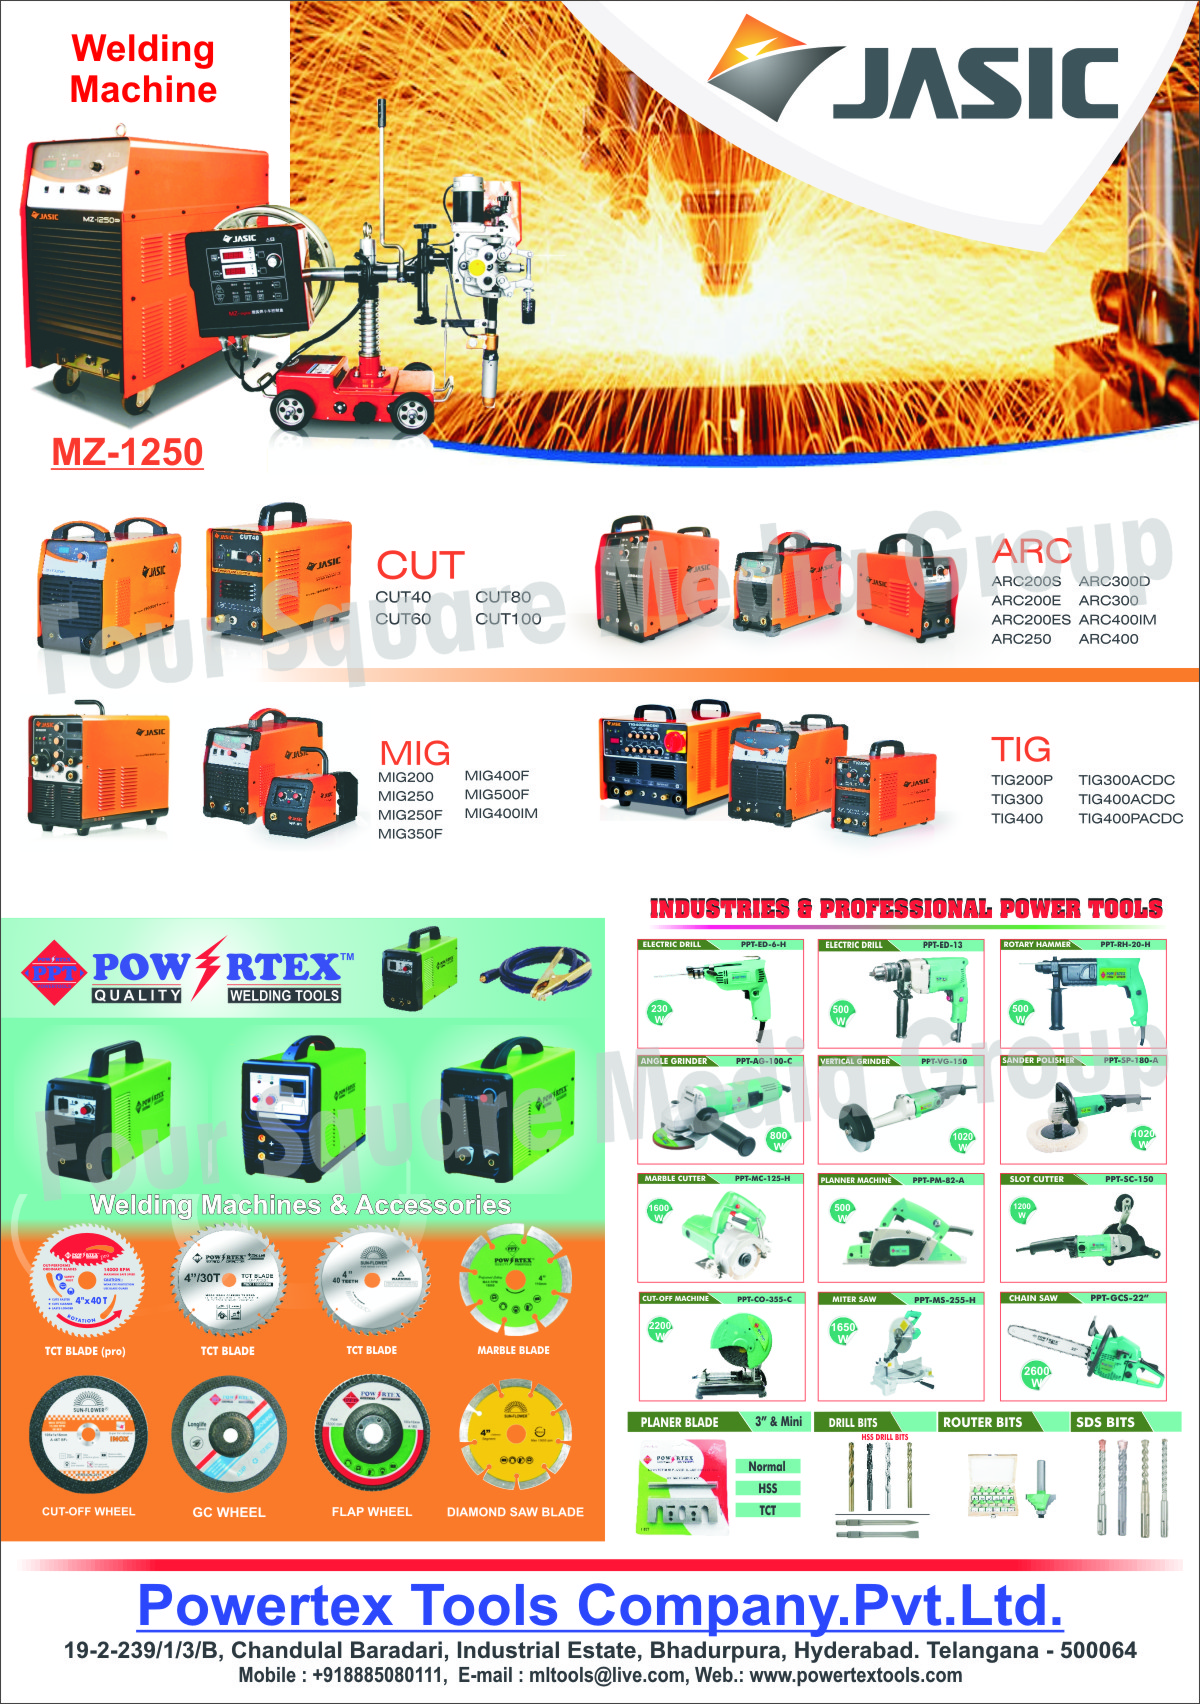 Welding Machines, Welding Machine Accessories, TCT Blades, Marble Blades, Cut Off Wheels, GC Wheels, Flap Wheels, Diamond Saw Blades, Industrial Power Tools, Professional Power Tools, Electric Drills, Rotary Hammers, Angle Grinders, Vertical Grinders, Sander Polishers, Marble Cutters, Planner Machines, Slot Cutters, Cut Off Machines, Miter Saws, Chain Saws, Planer Blades, Drill Bits, Router Bits, SDS Bits, Cut Welding Machines, MIG Welding Machines, ARC Welding Machines, TIG Welding Machines, Welding Accessories, Welding Tools